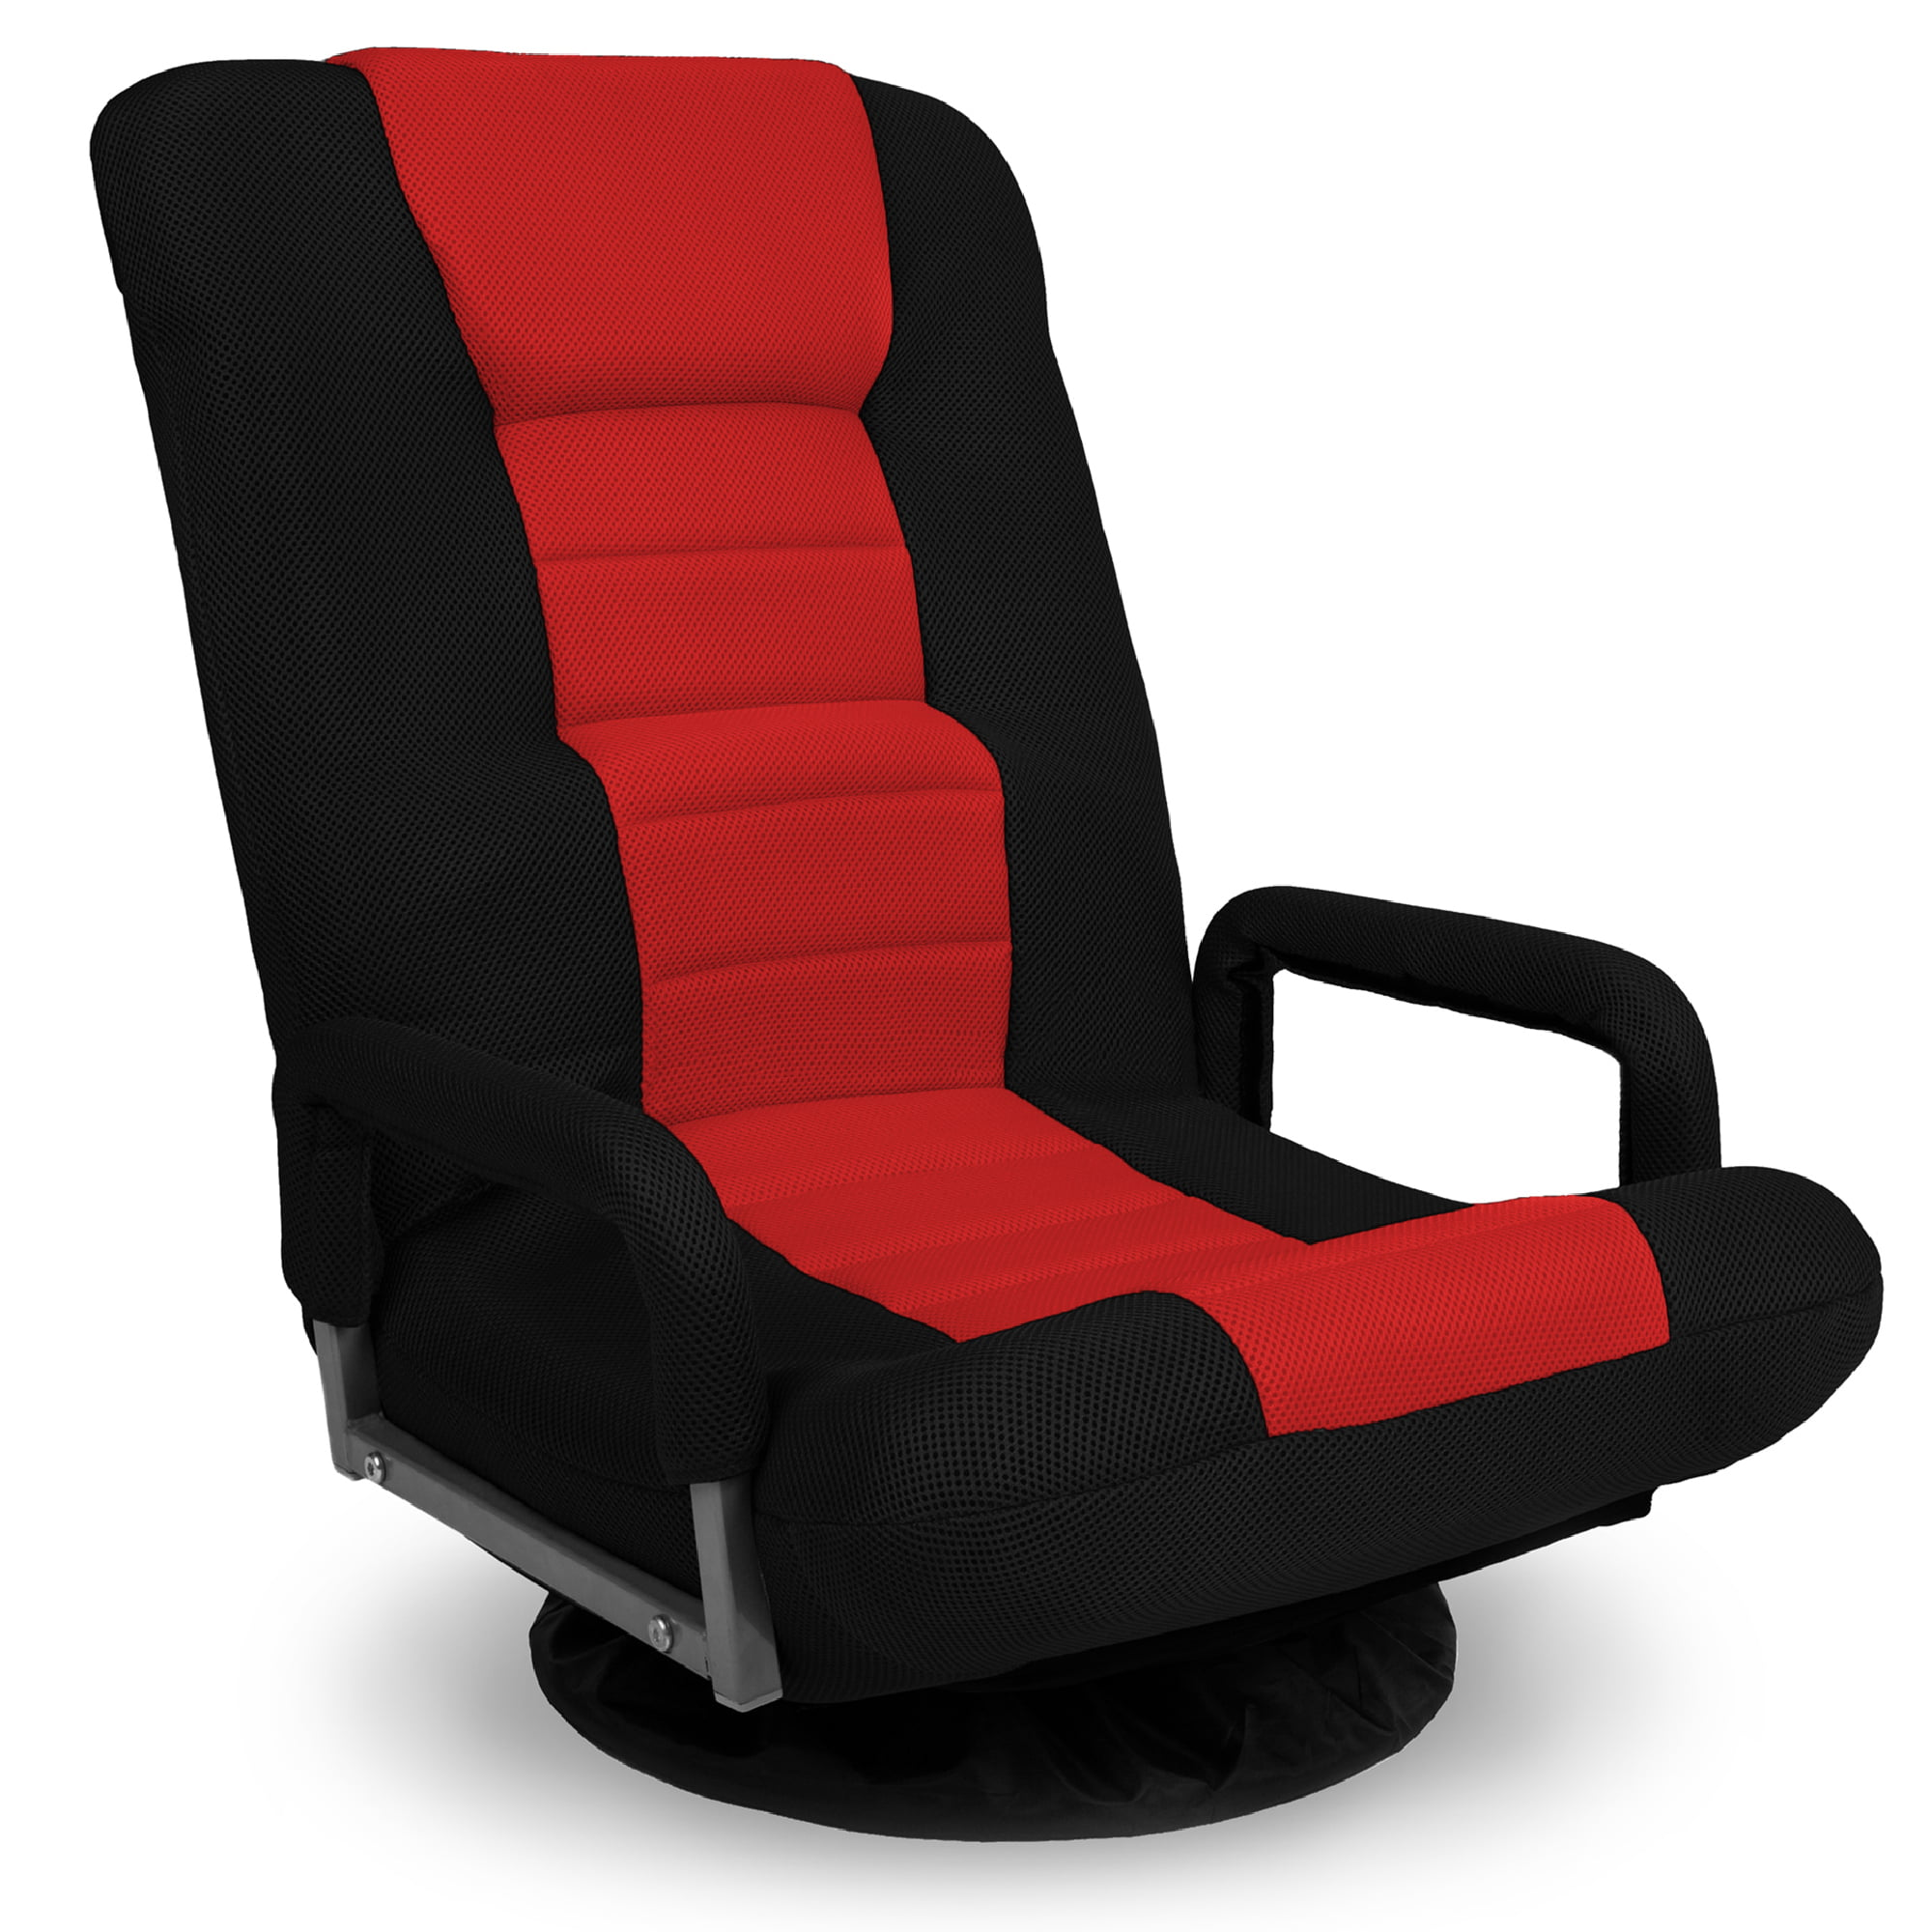 High quality WCG chair mesh computer chair racing